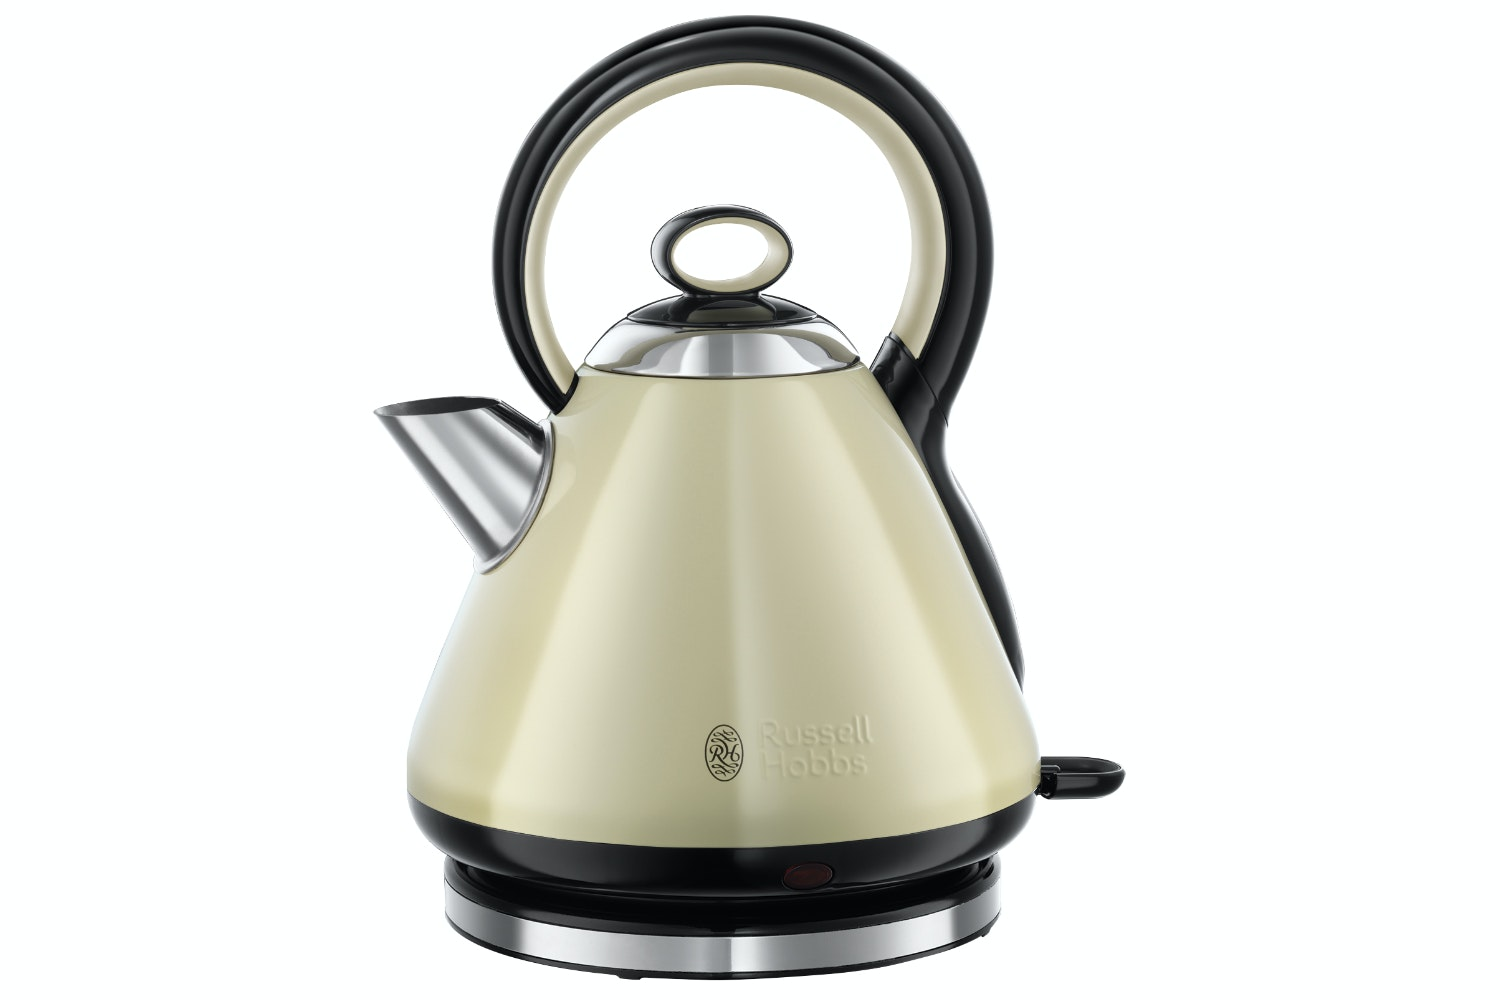 Russell Hobbs 1.7L Legacy Collection Kettle | 21882 | Cream